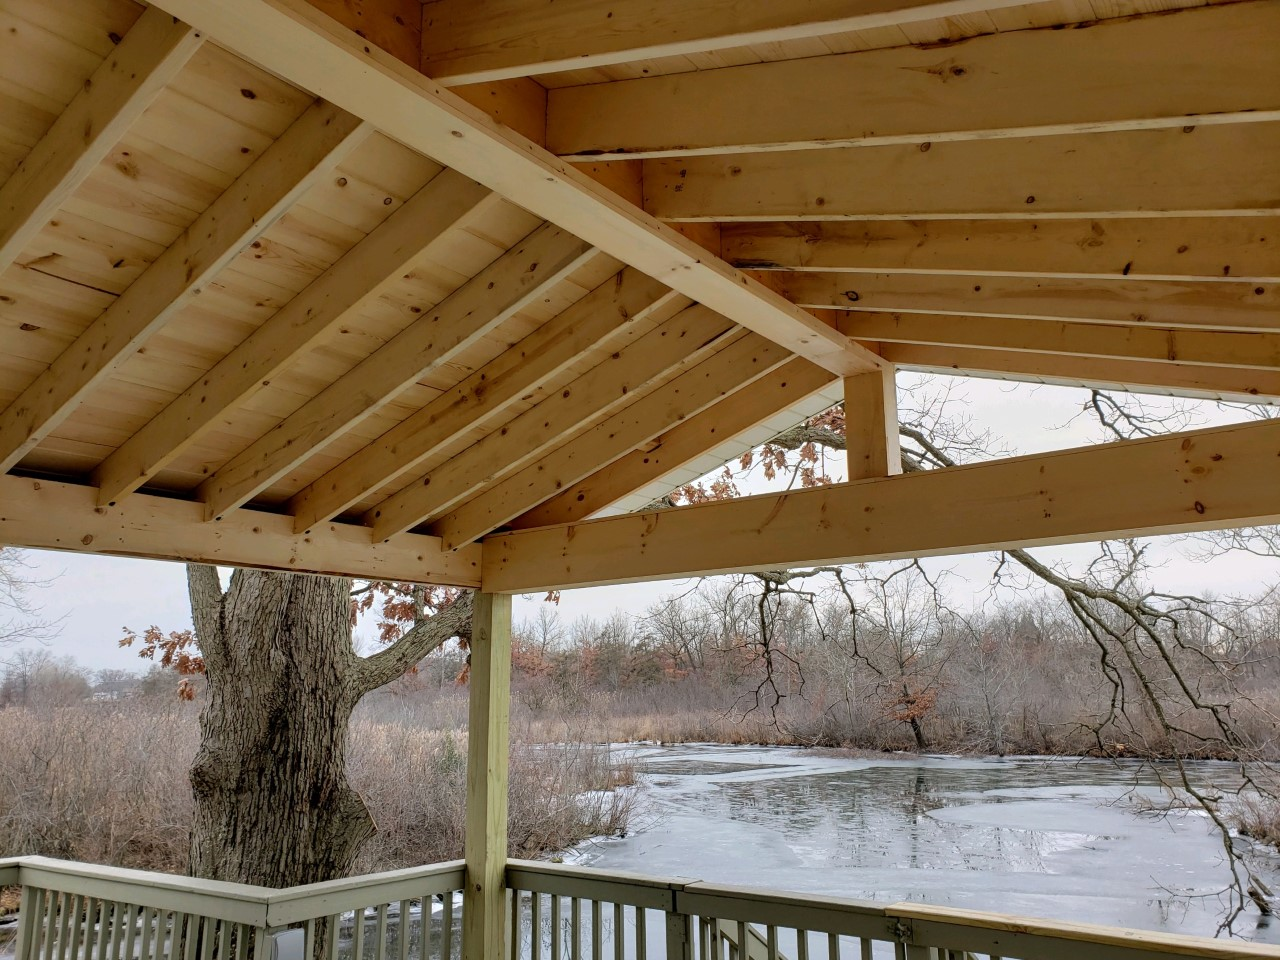 These-clients-enjoy-lakefront-living-on-Portage-Lakes-with-an-amazing-view-from-their-new-covered-deck/porch